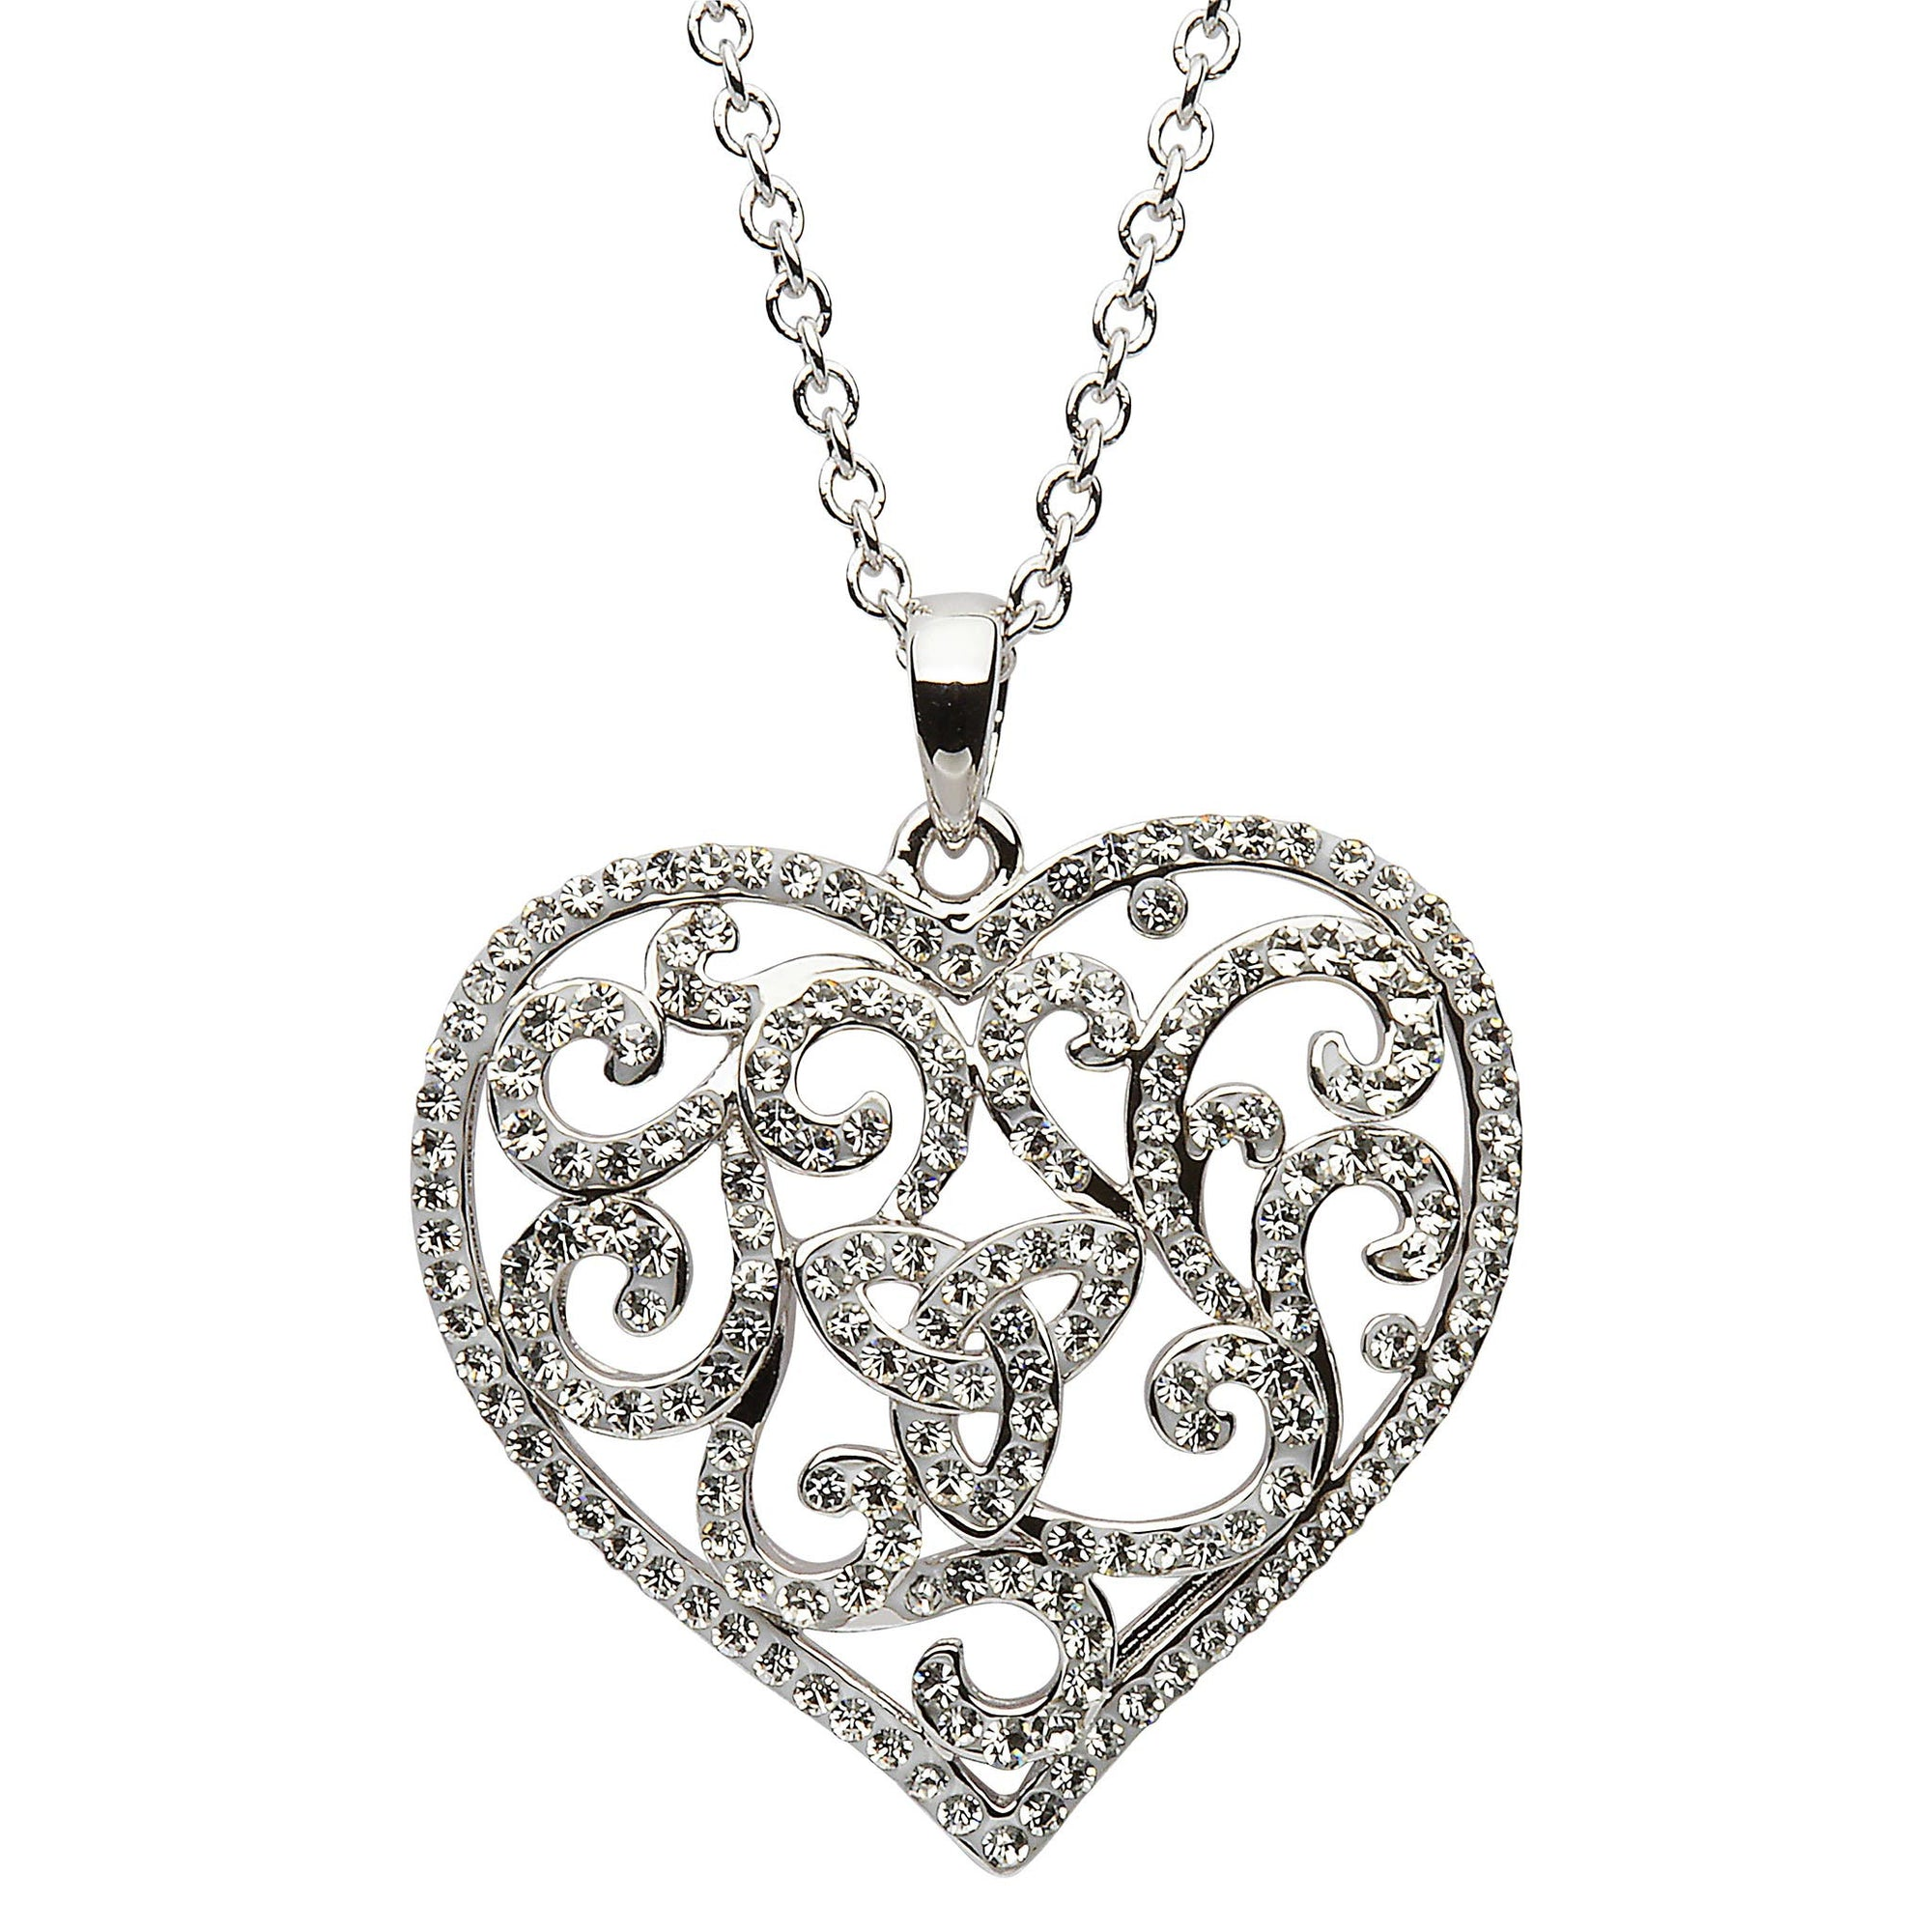 SW54 Heart Trinity Necklace Encrusted With White Swarovski Crystals by Shanore